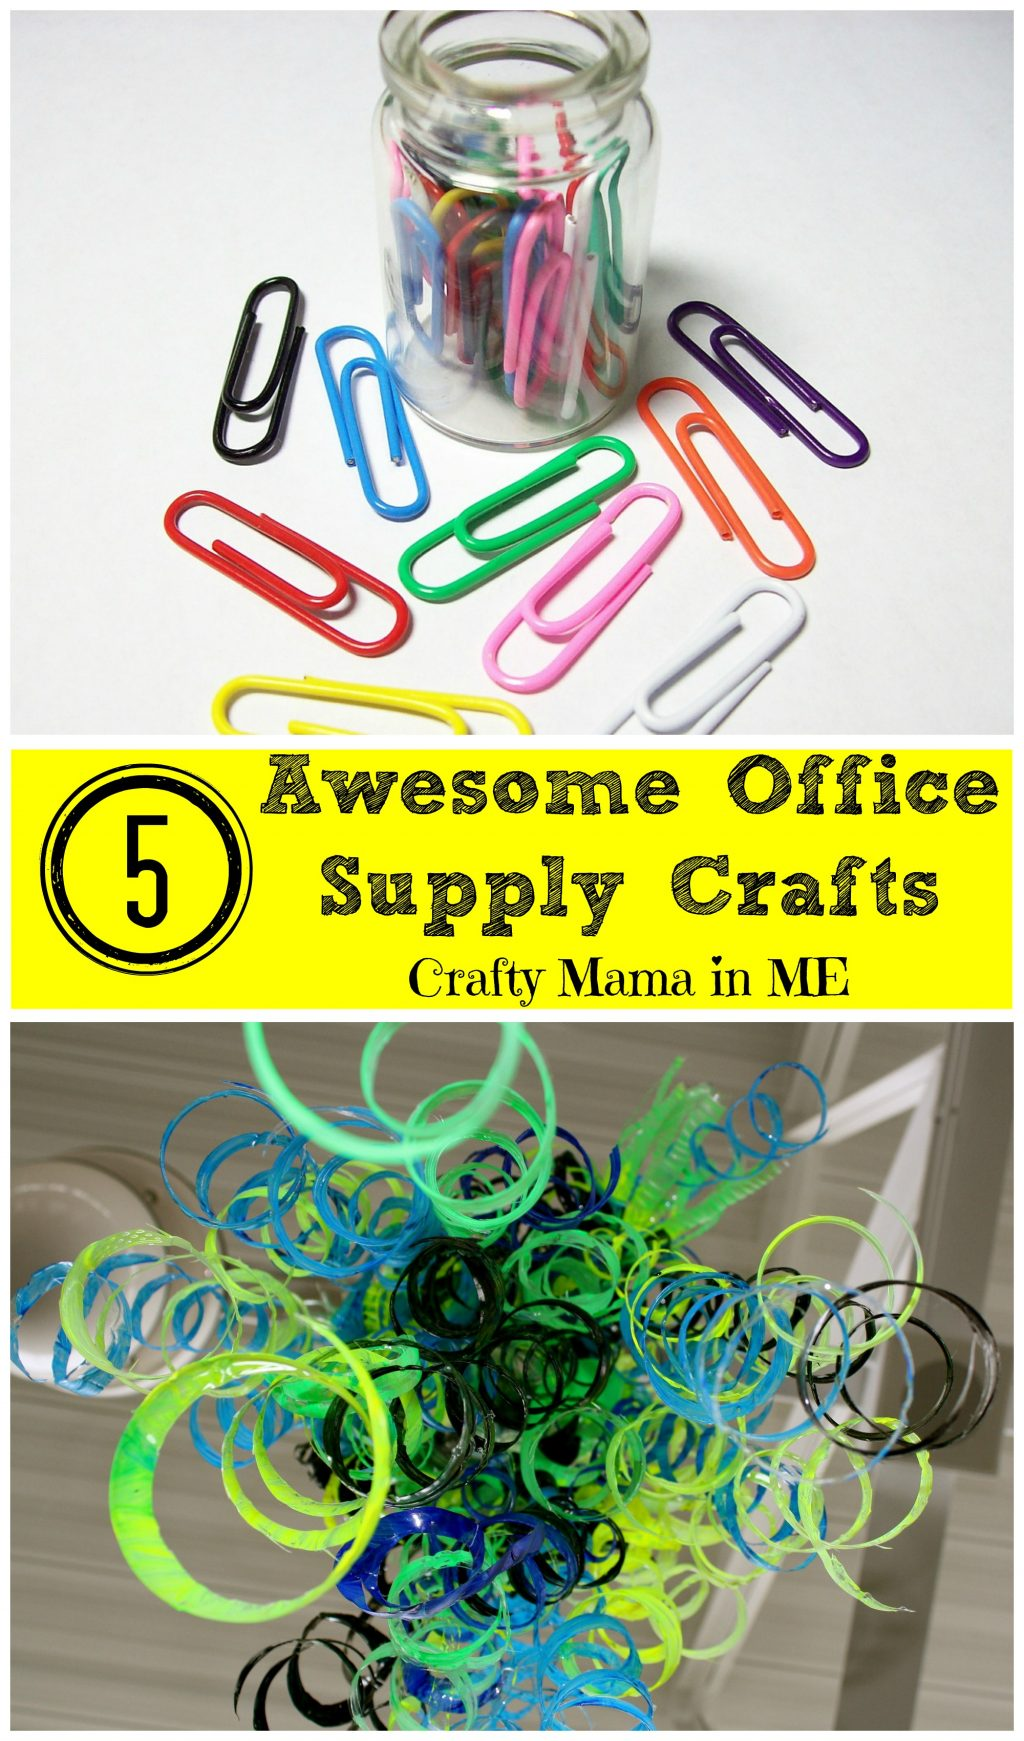 How to Make 5 Awesome Office Supply Crafts